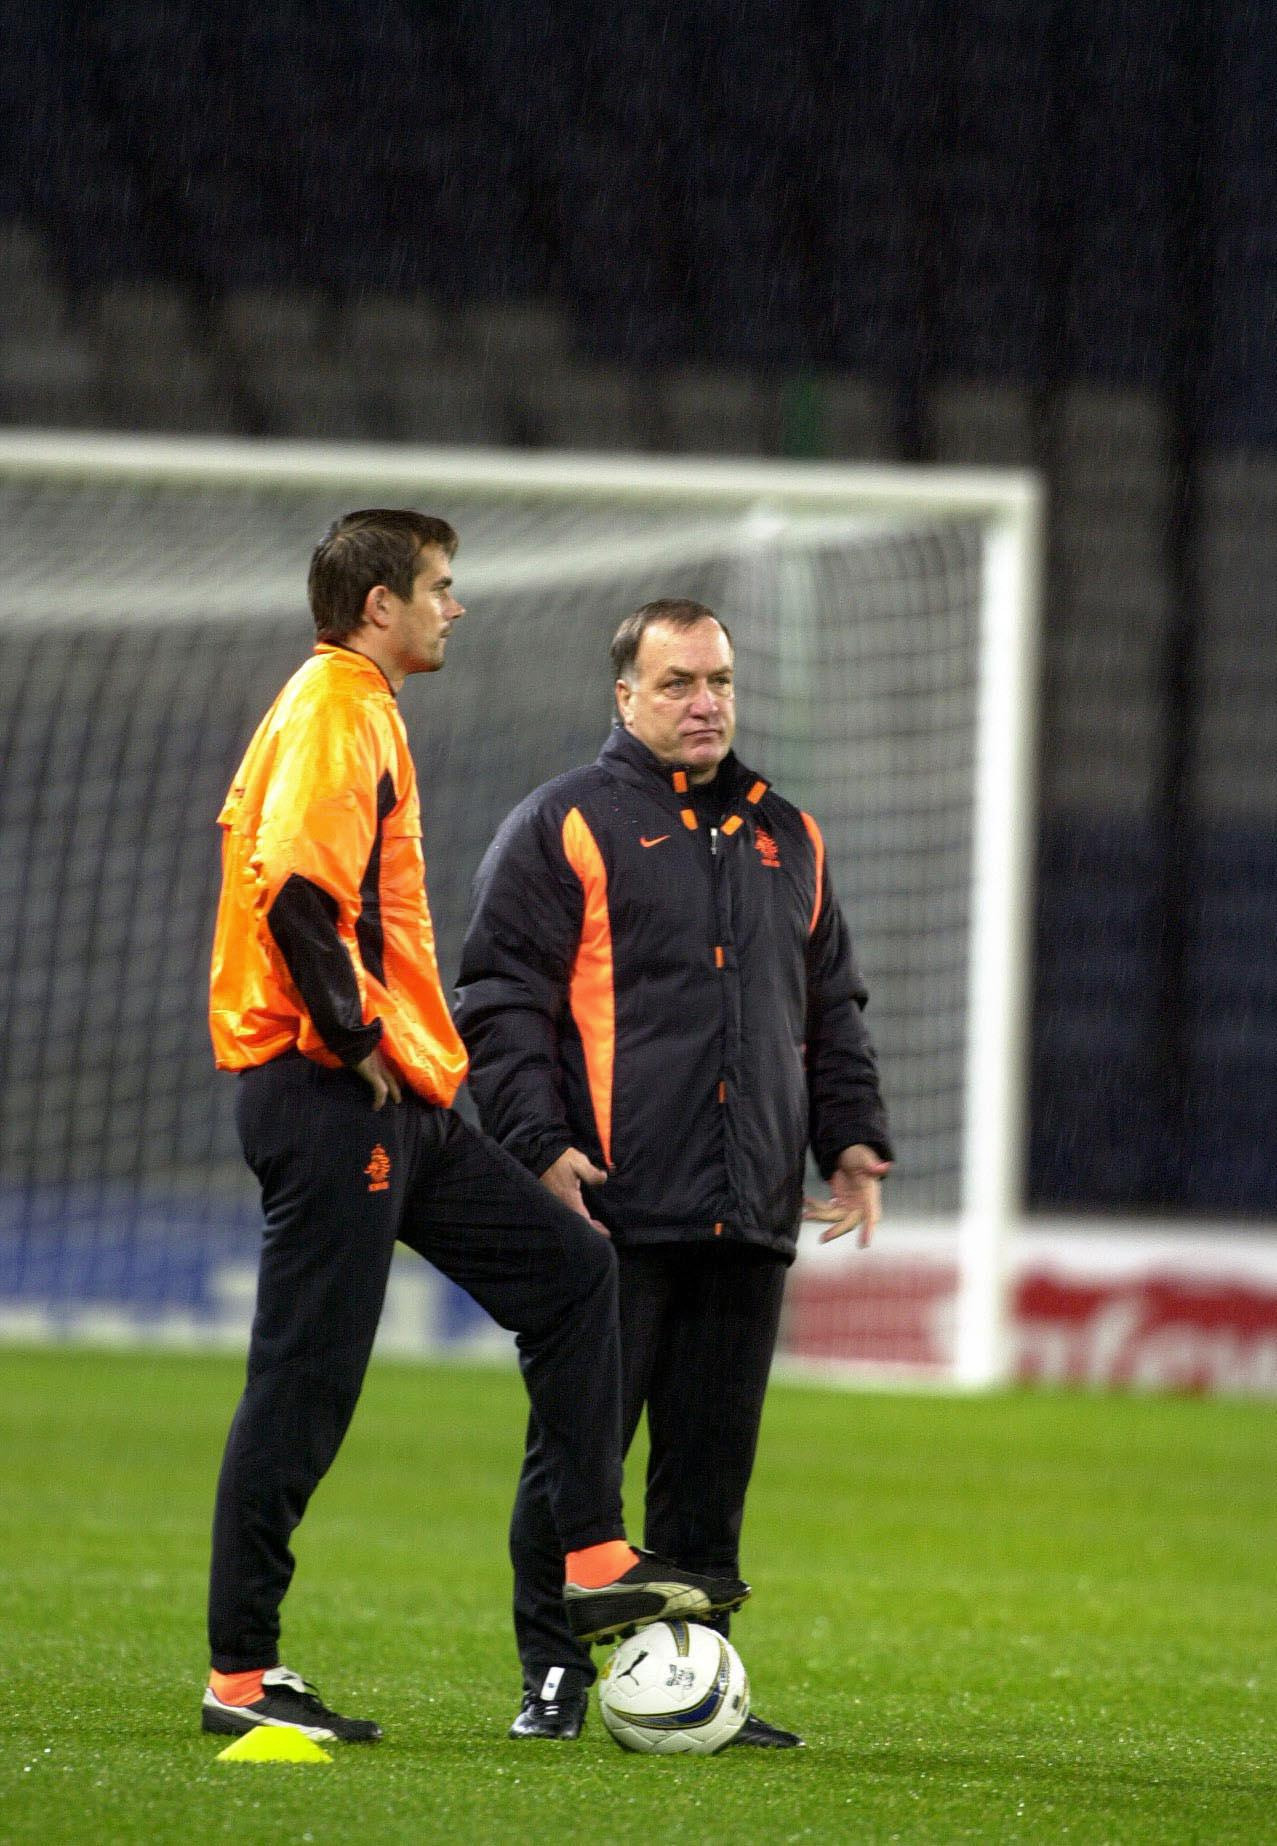 Cocu worked with Dick Advocaat (right) as he moved into coaching